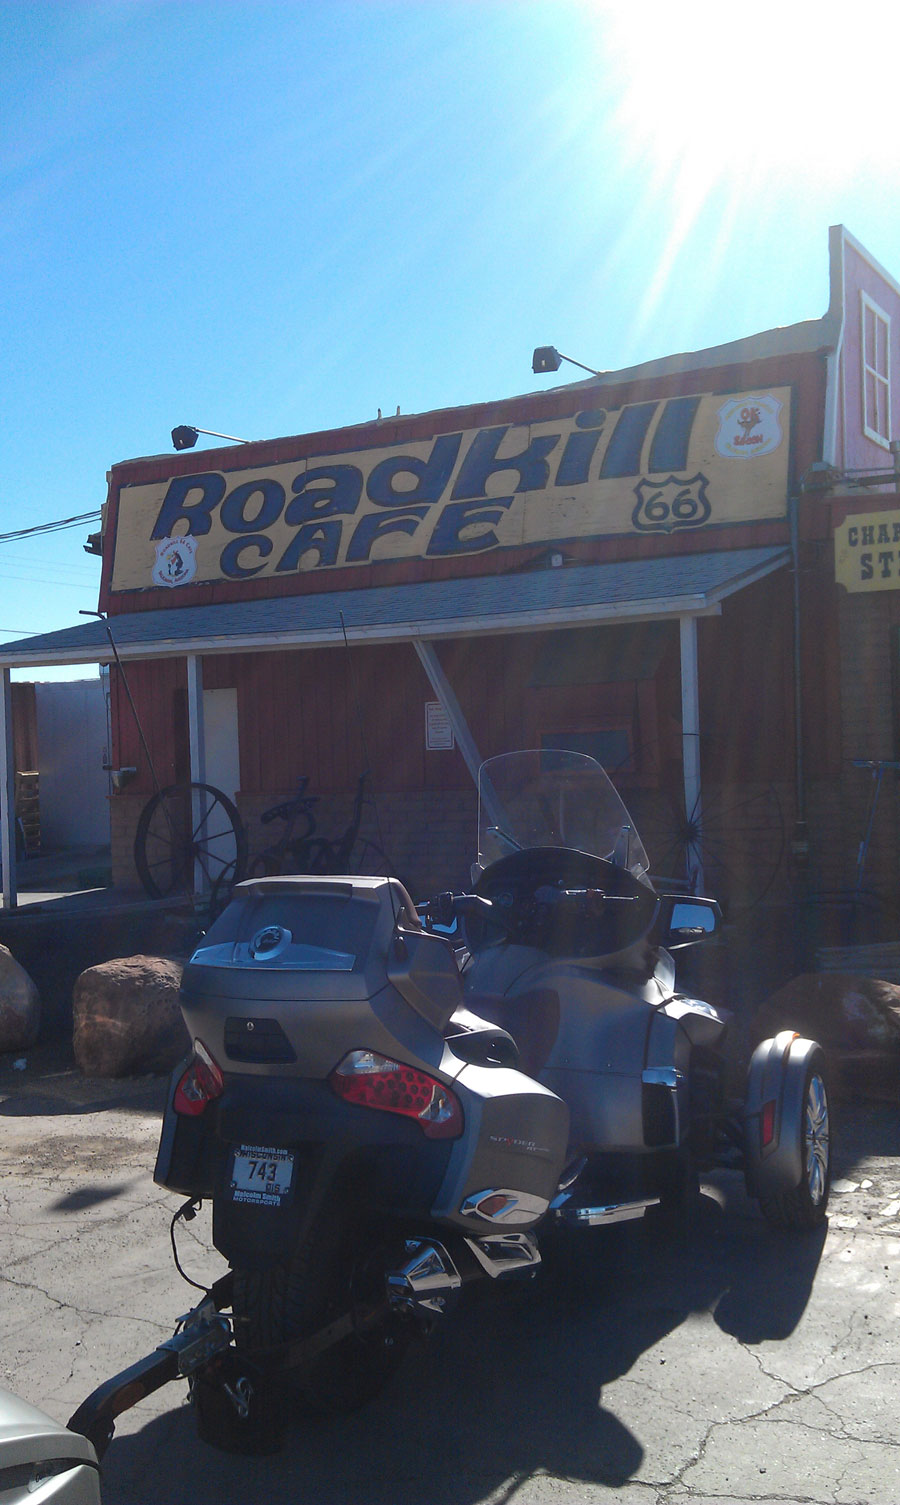 The Roadkill Café